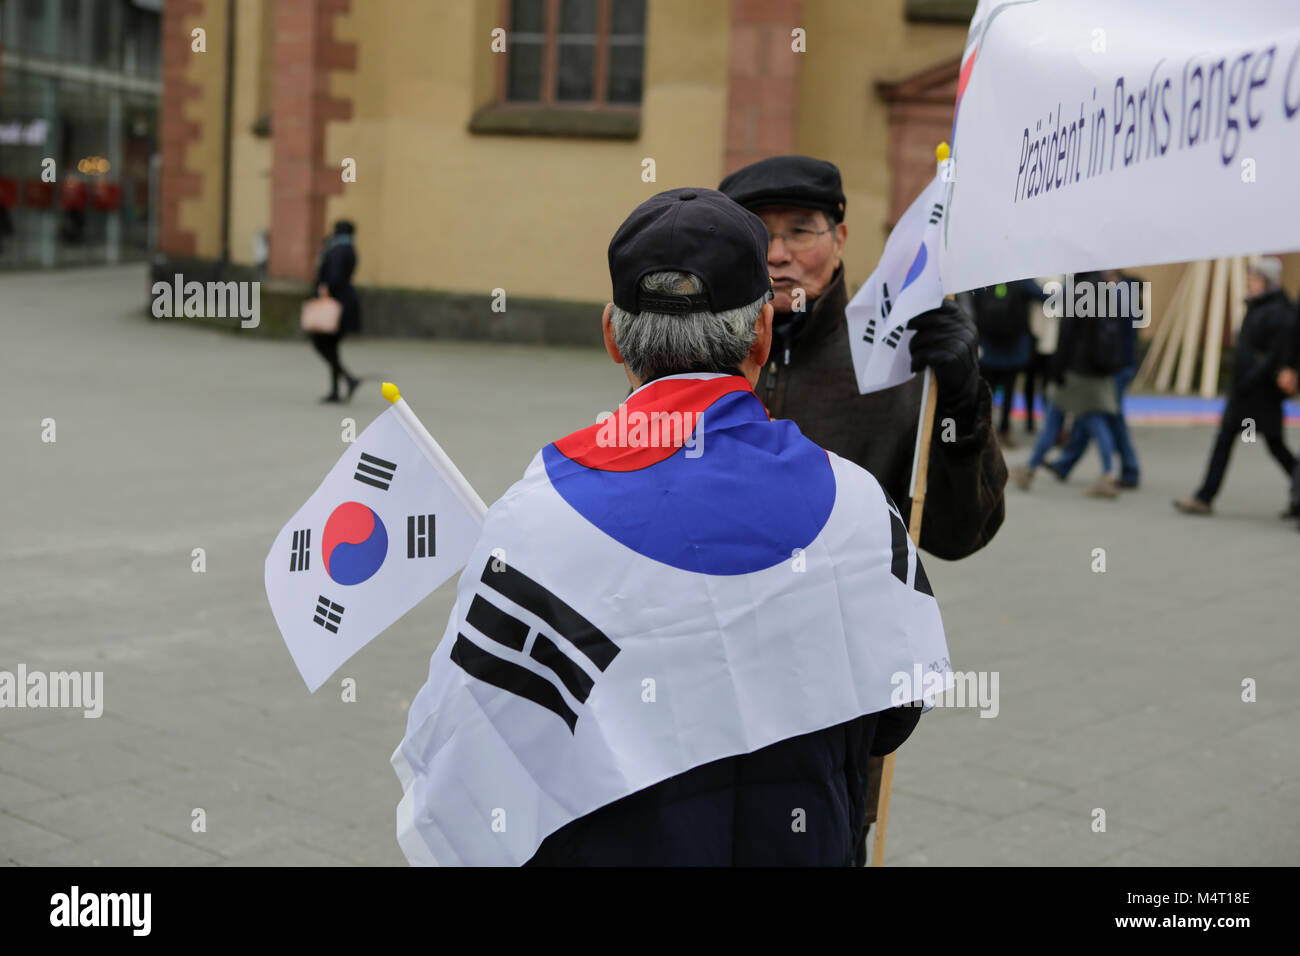 Frankfurt, Germany. 17th February 2018. A man wears a South Korean flag over his shoulders. South Koreans living Stock Photo